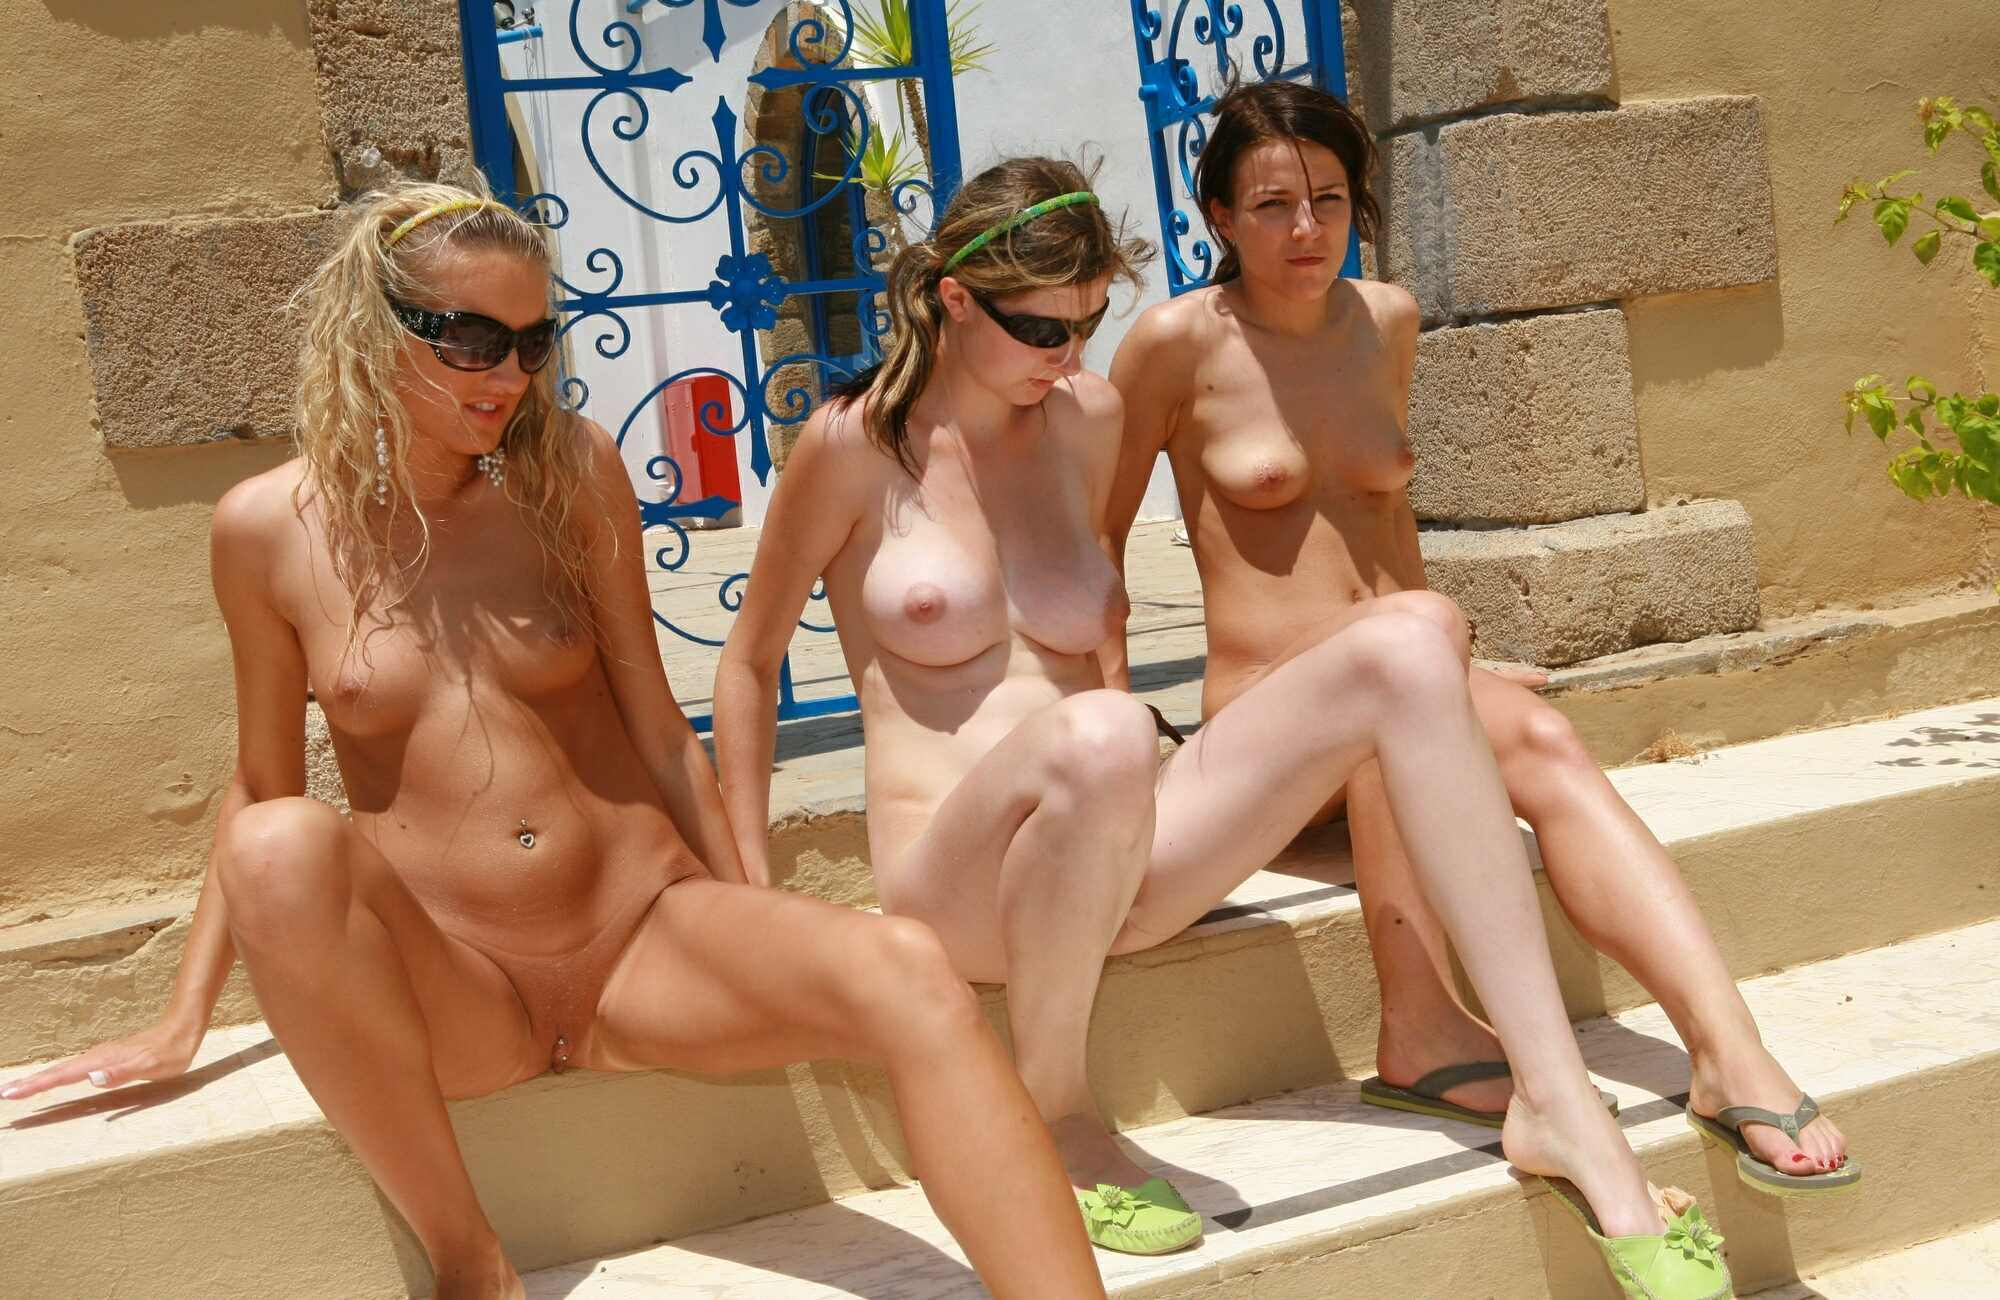 Young girls nudists photo - Lifestyle Naturism